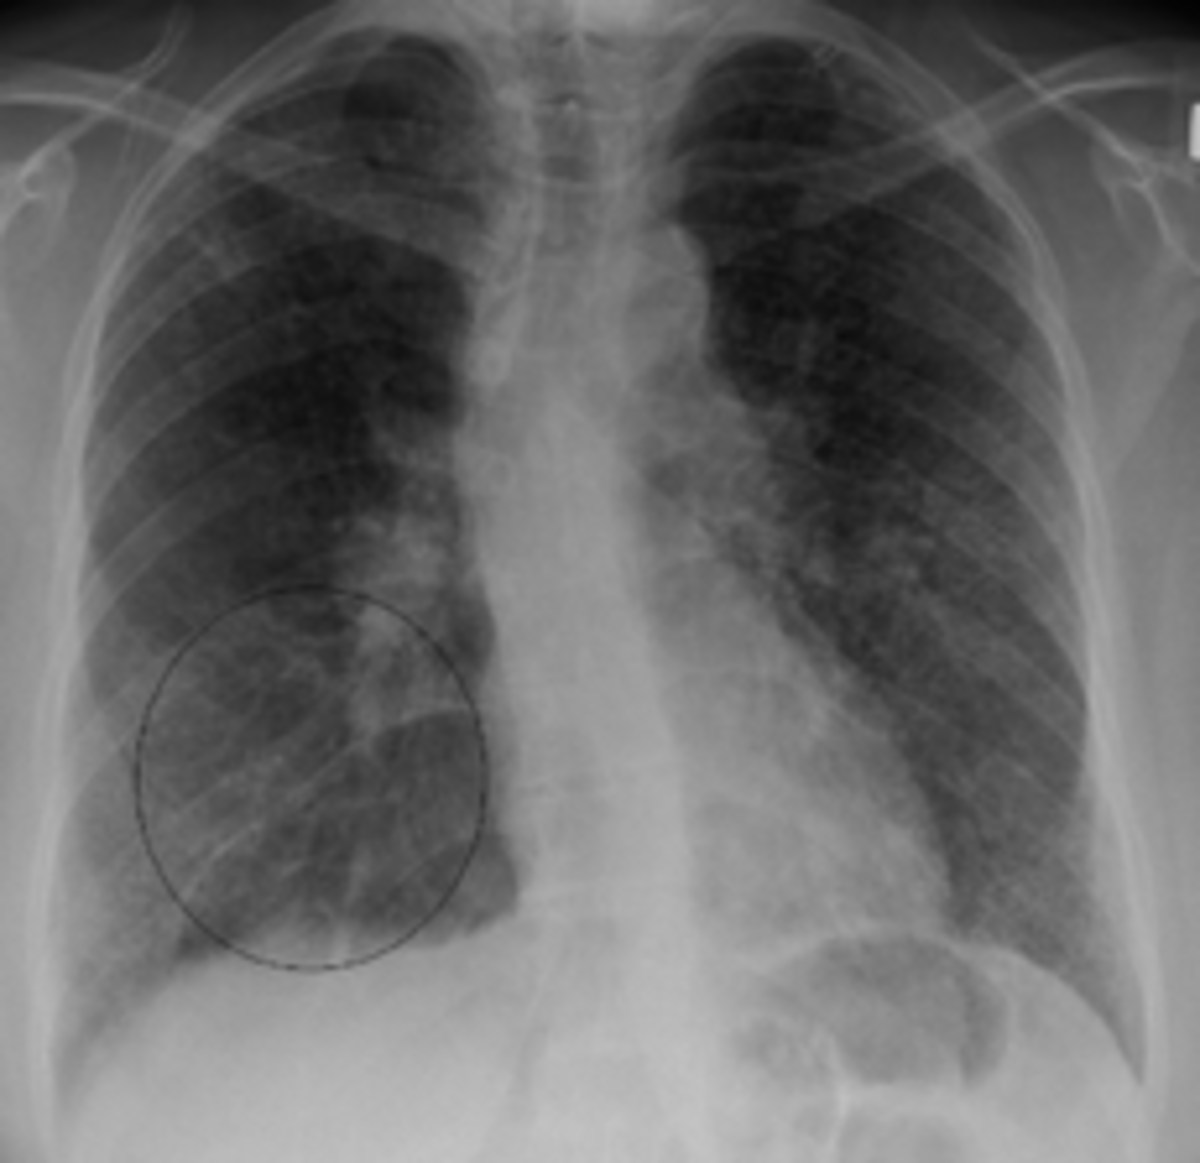 It commonly improves or clears up spontaneously. More than two-thirds of people with lung sarcoidosis have no symptoms after 9 years. About 50% have relapses. About 10% develop serious disability